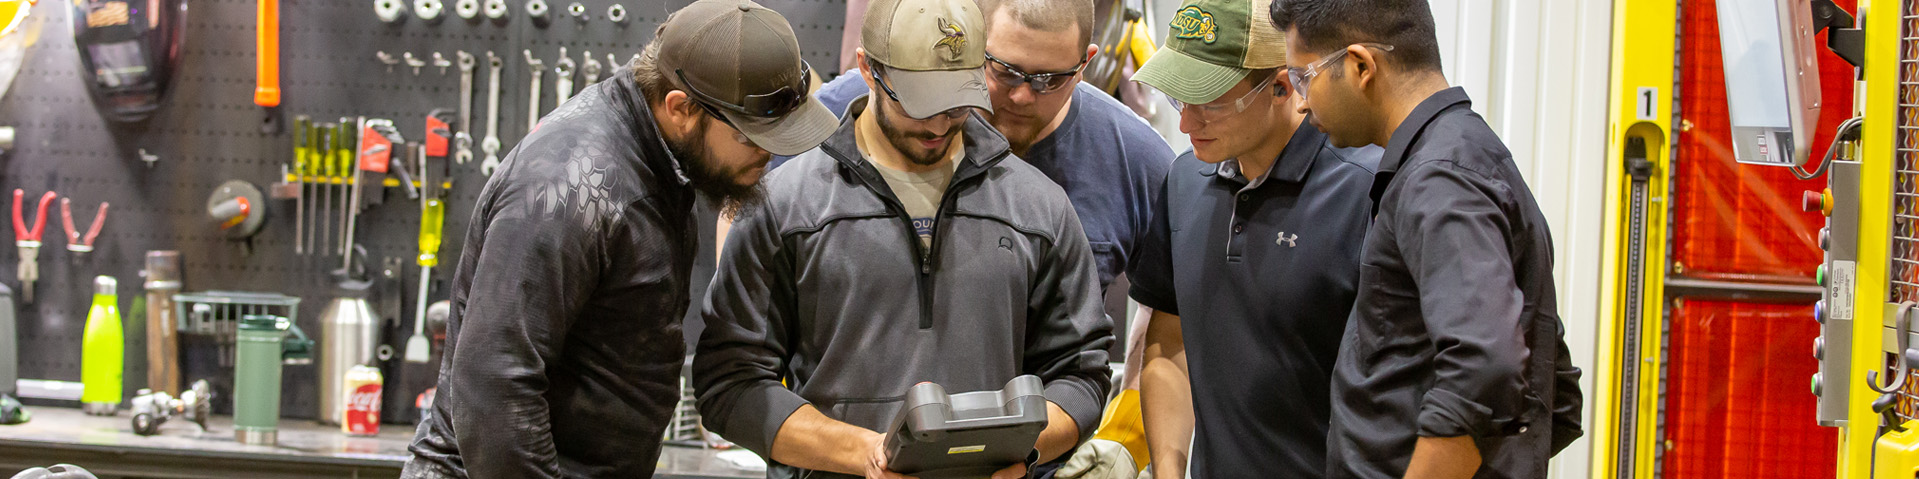 Five Steffes engineers looking at a controller for a robot at a manufacturing facility